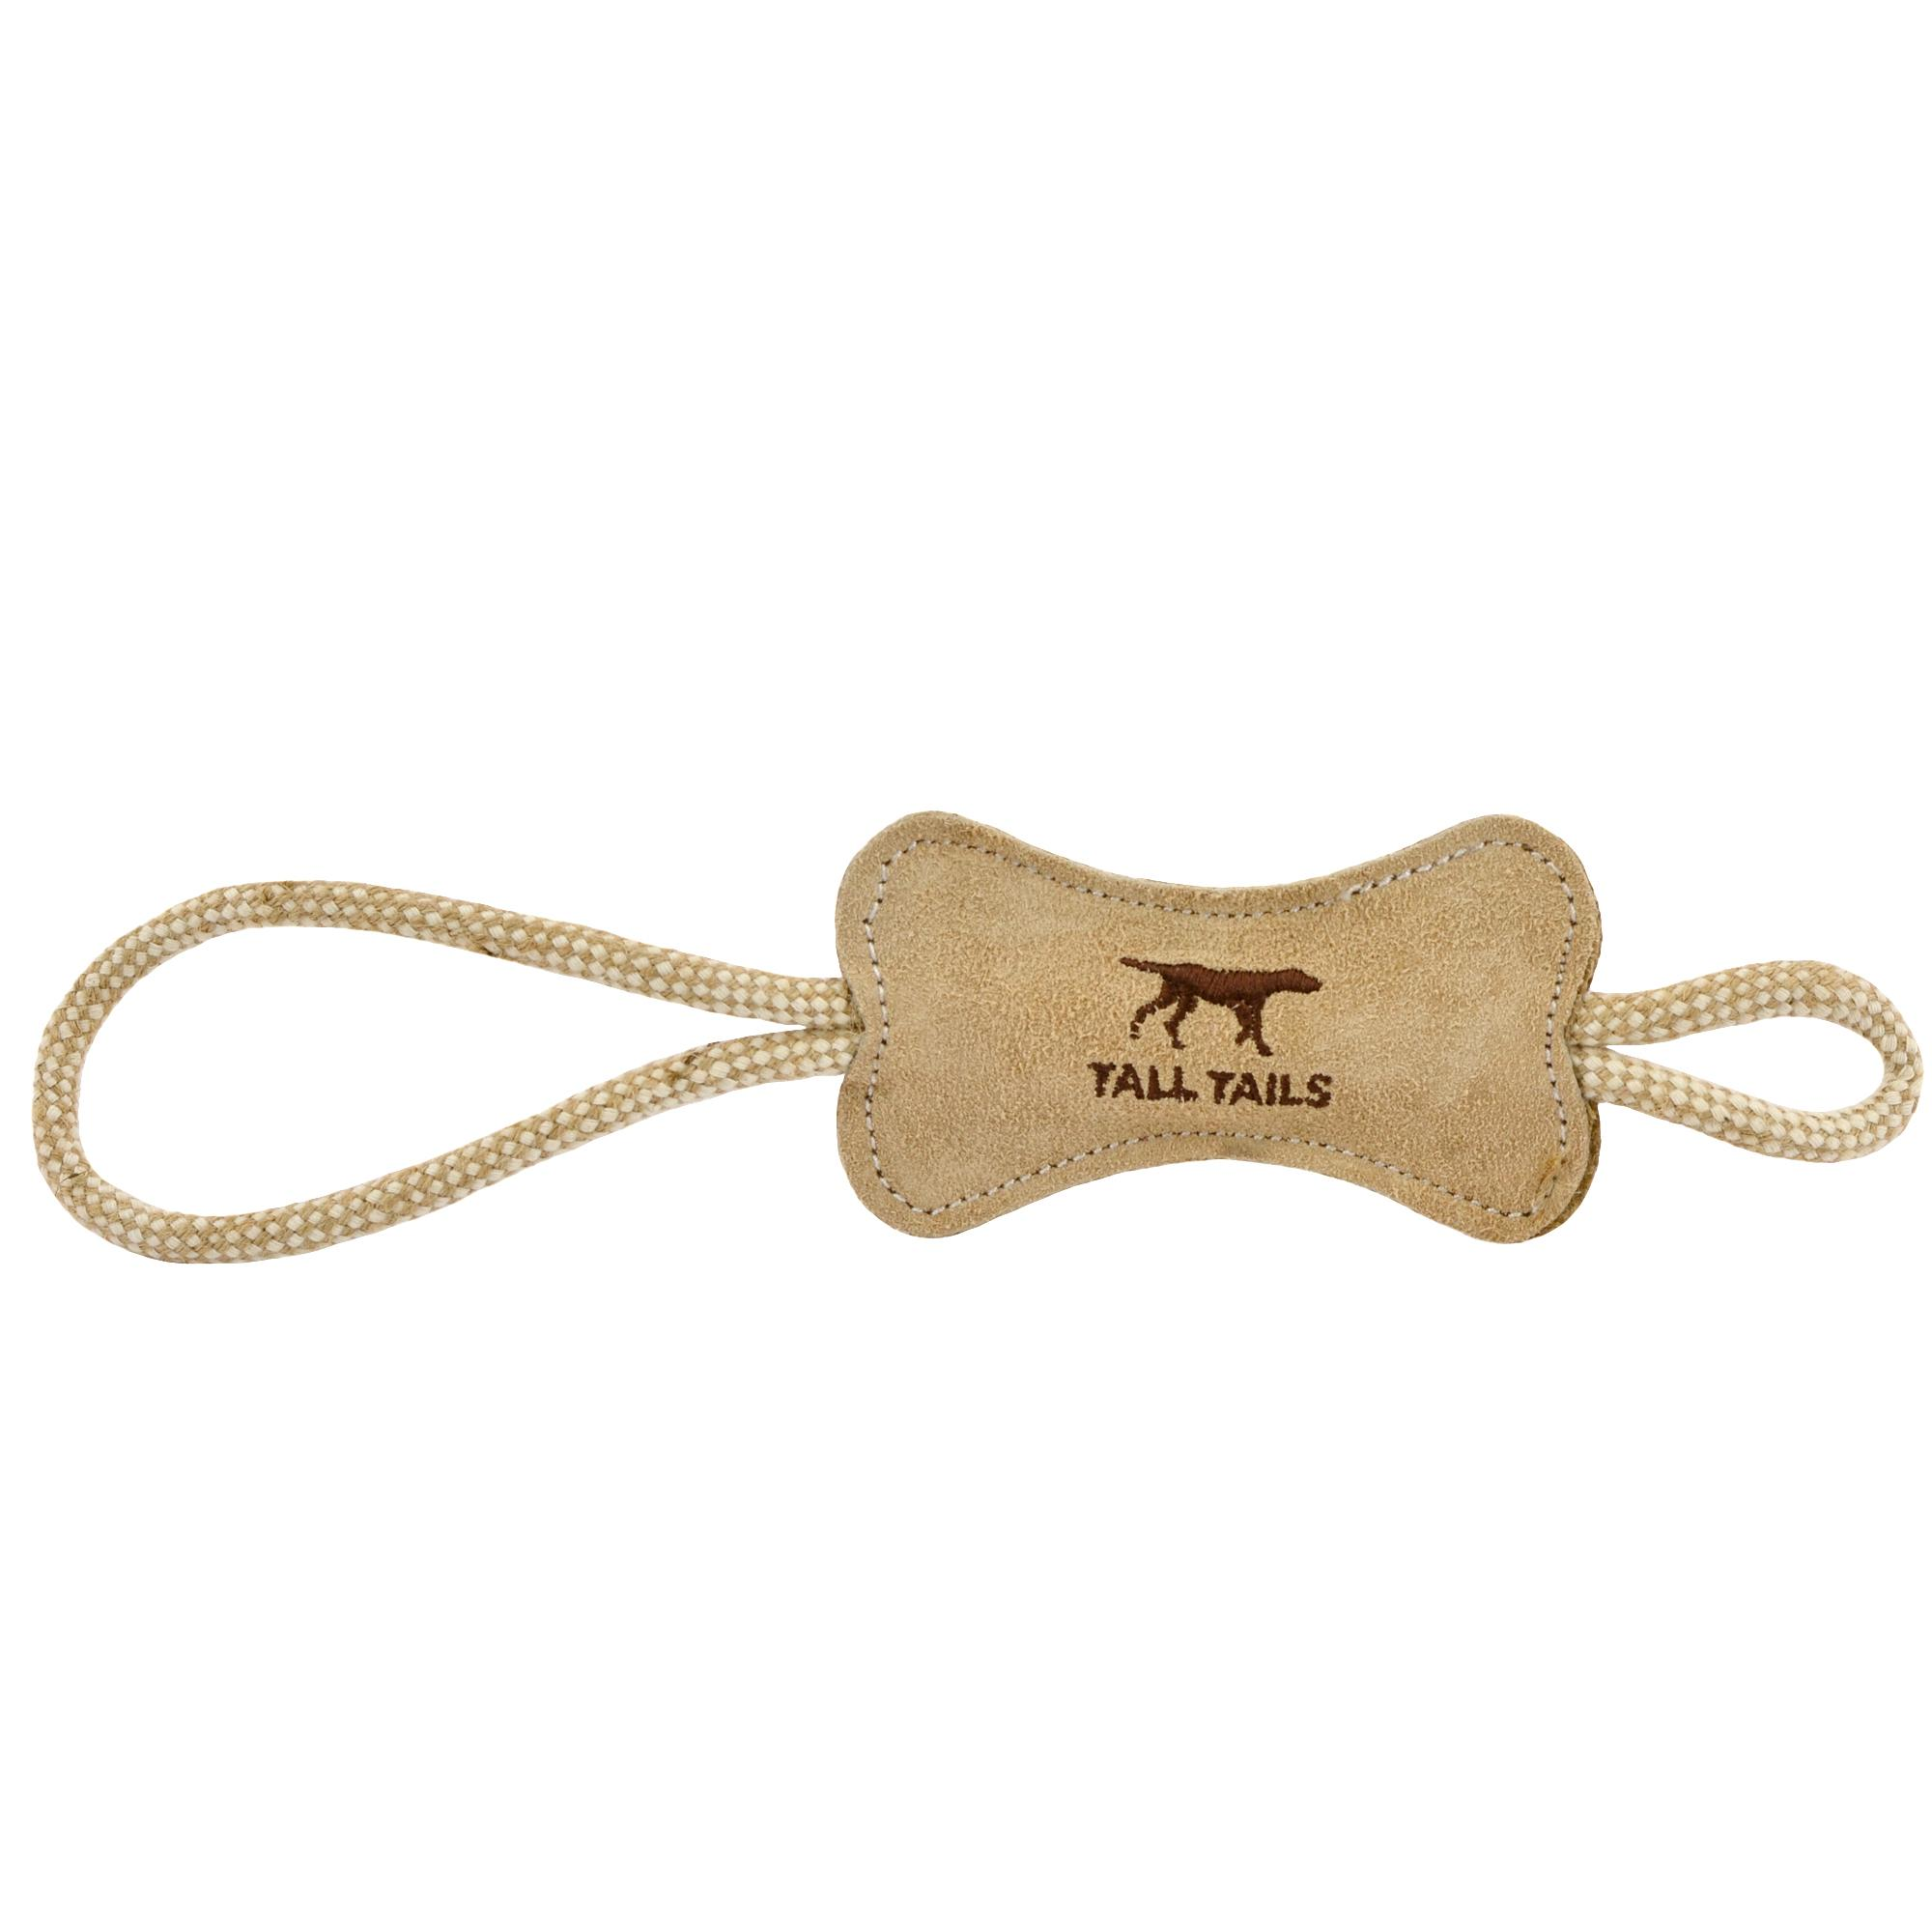 Tall Tails Natural Leather Bone Tug Dog Toy, 12-in